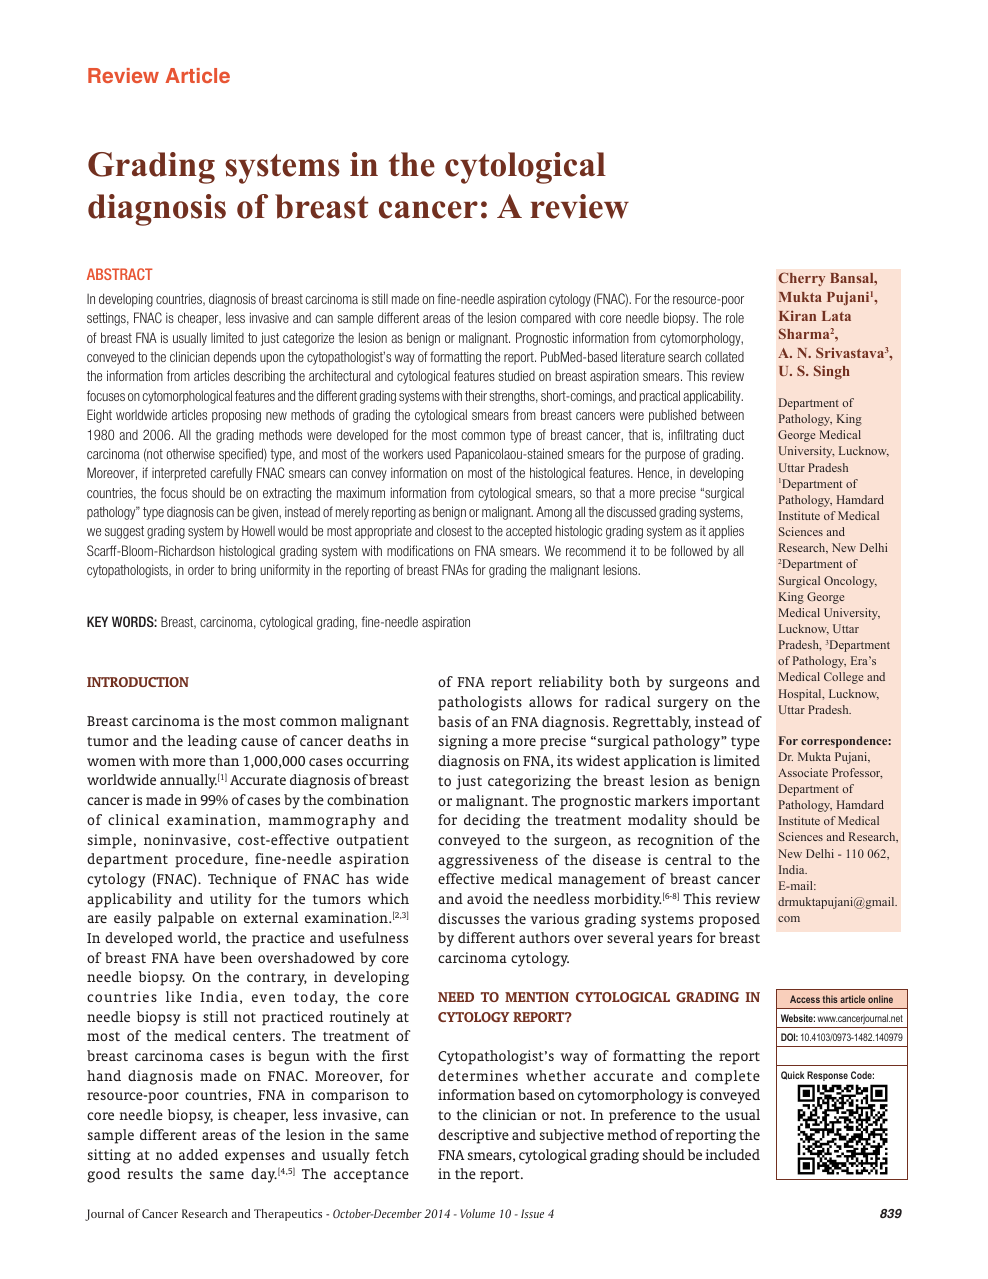 Grading systems in the cytological diagnosis of breast